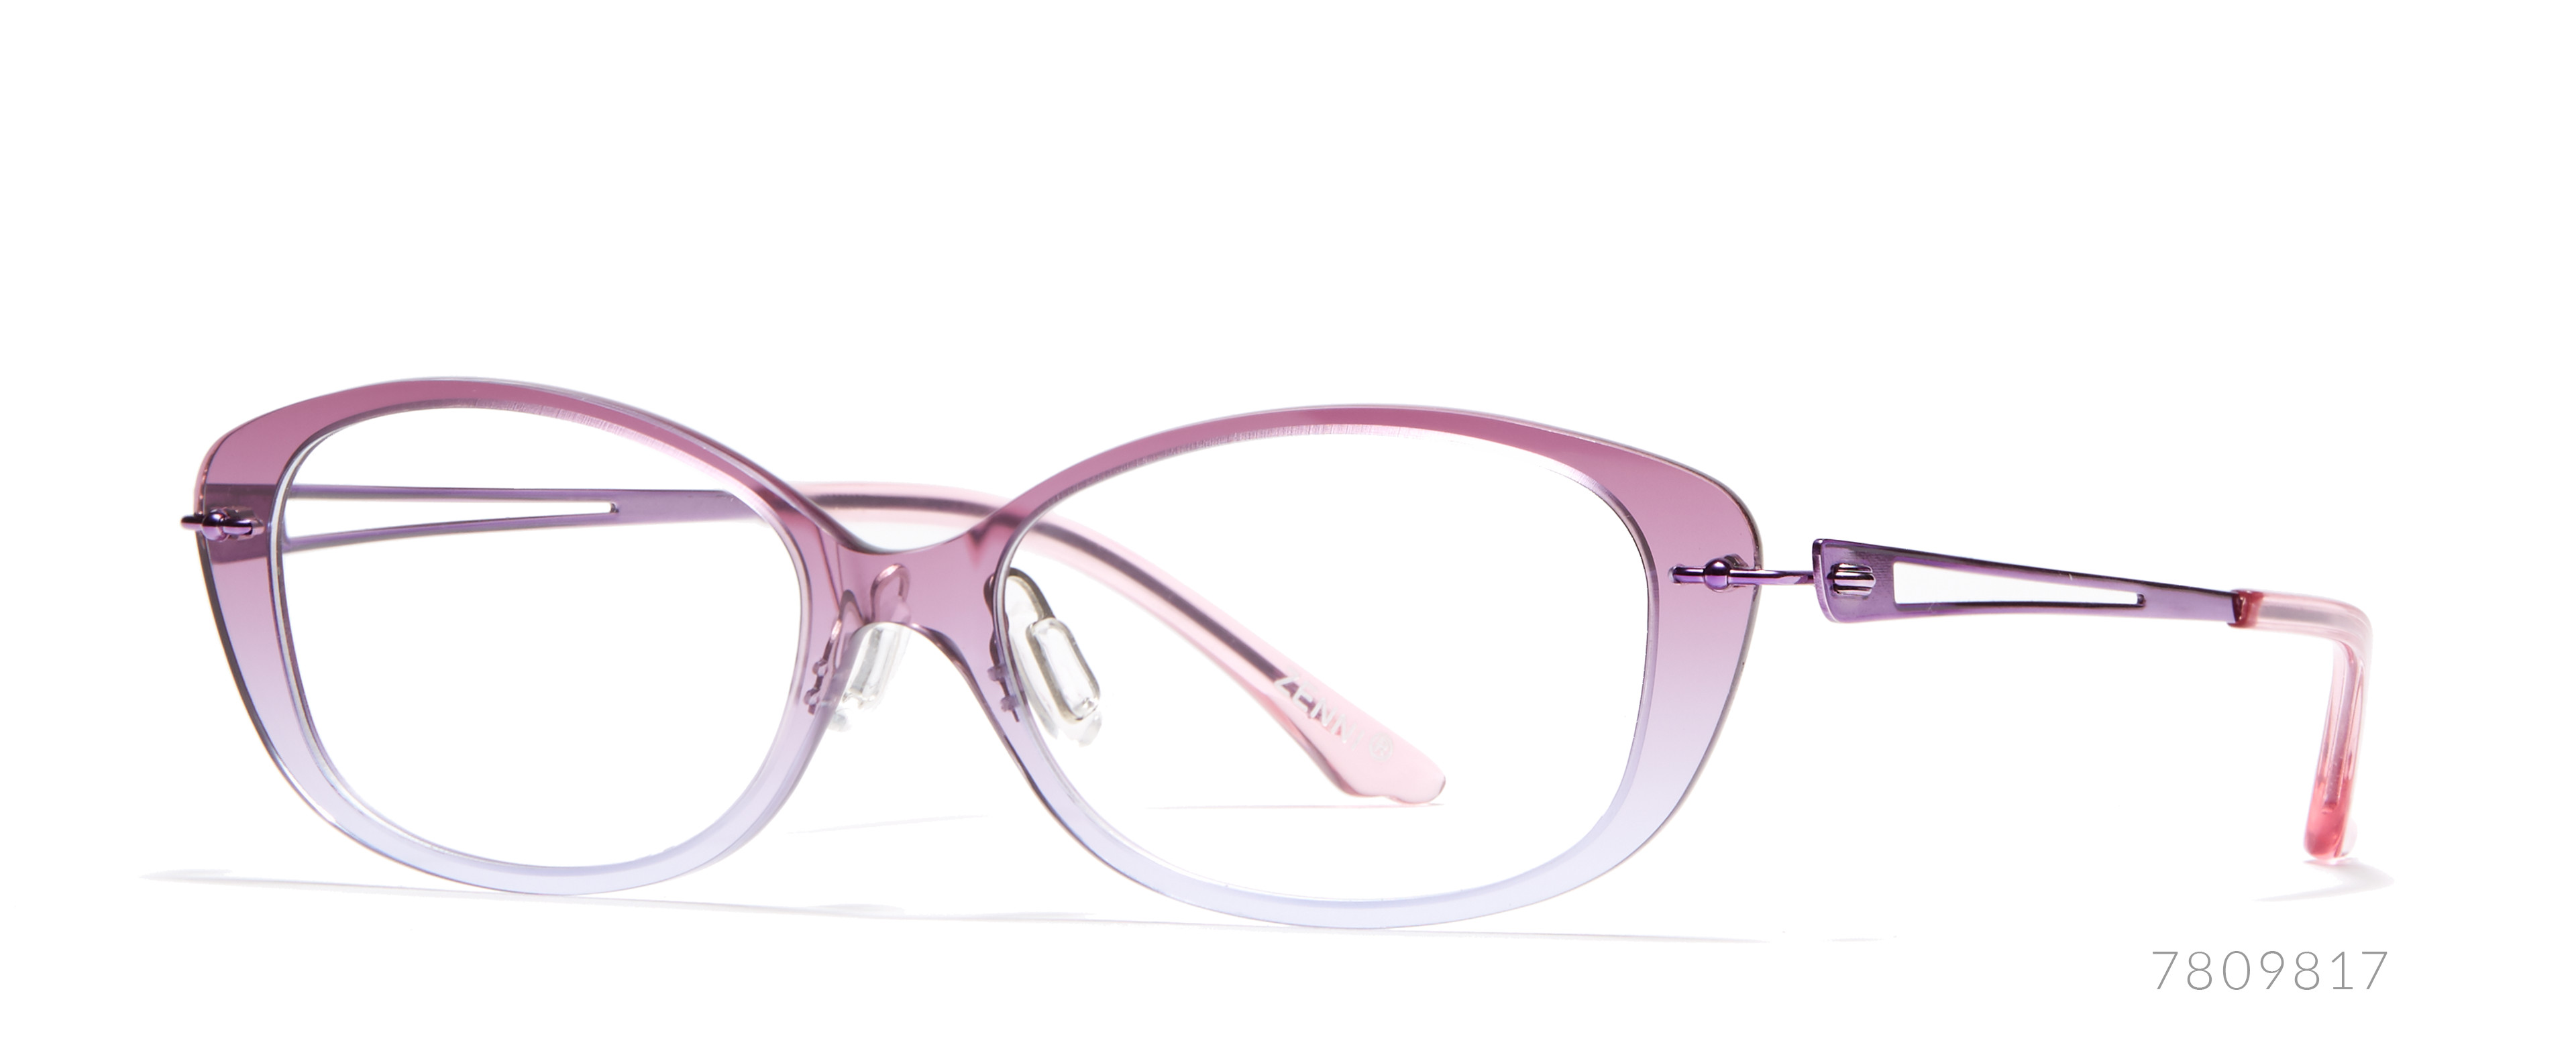 2ee85c621fc glasses for diamond face women